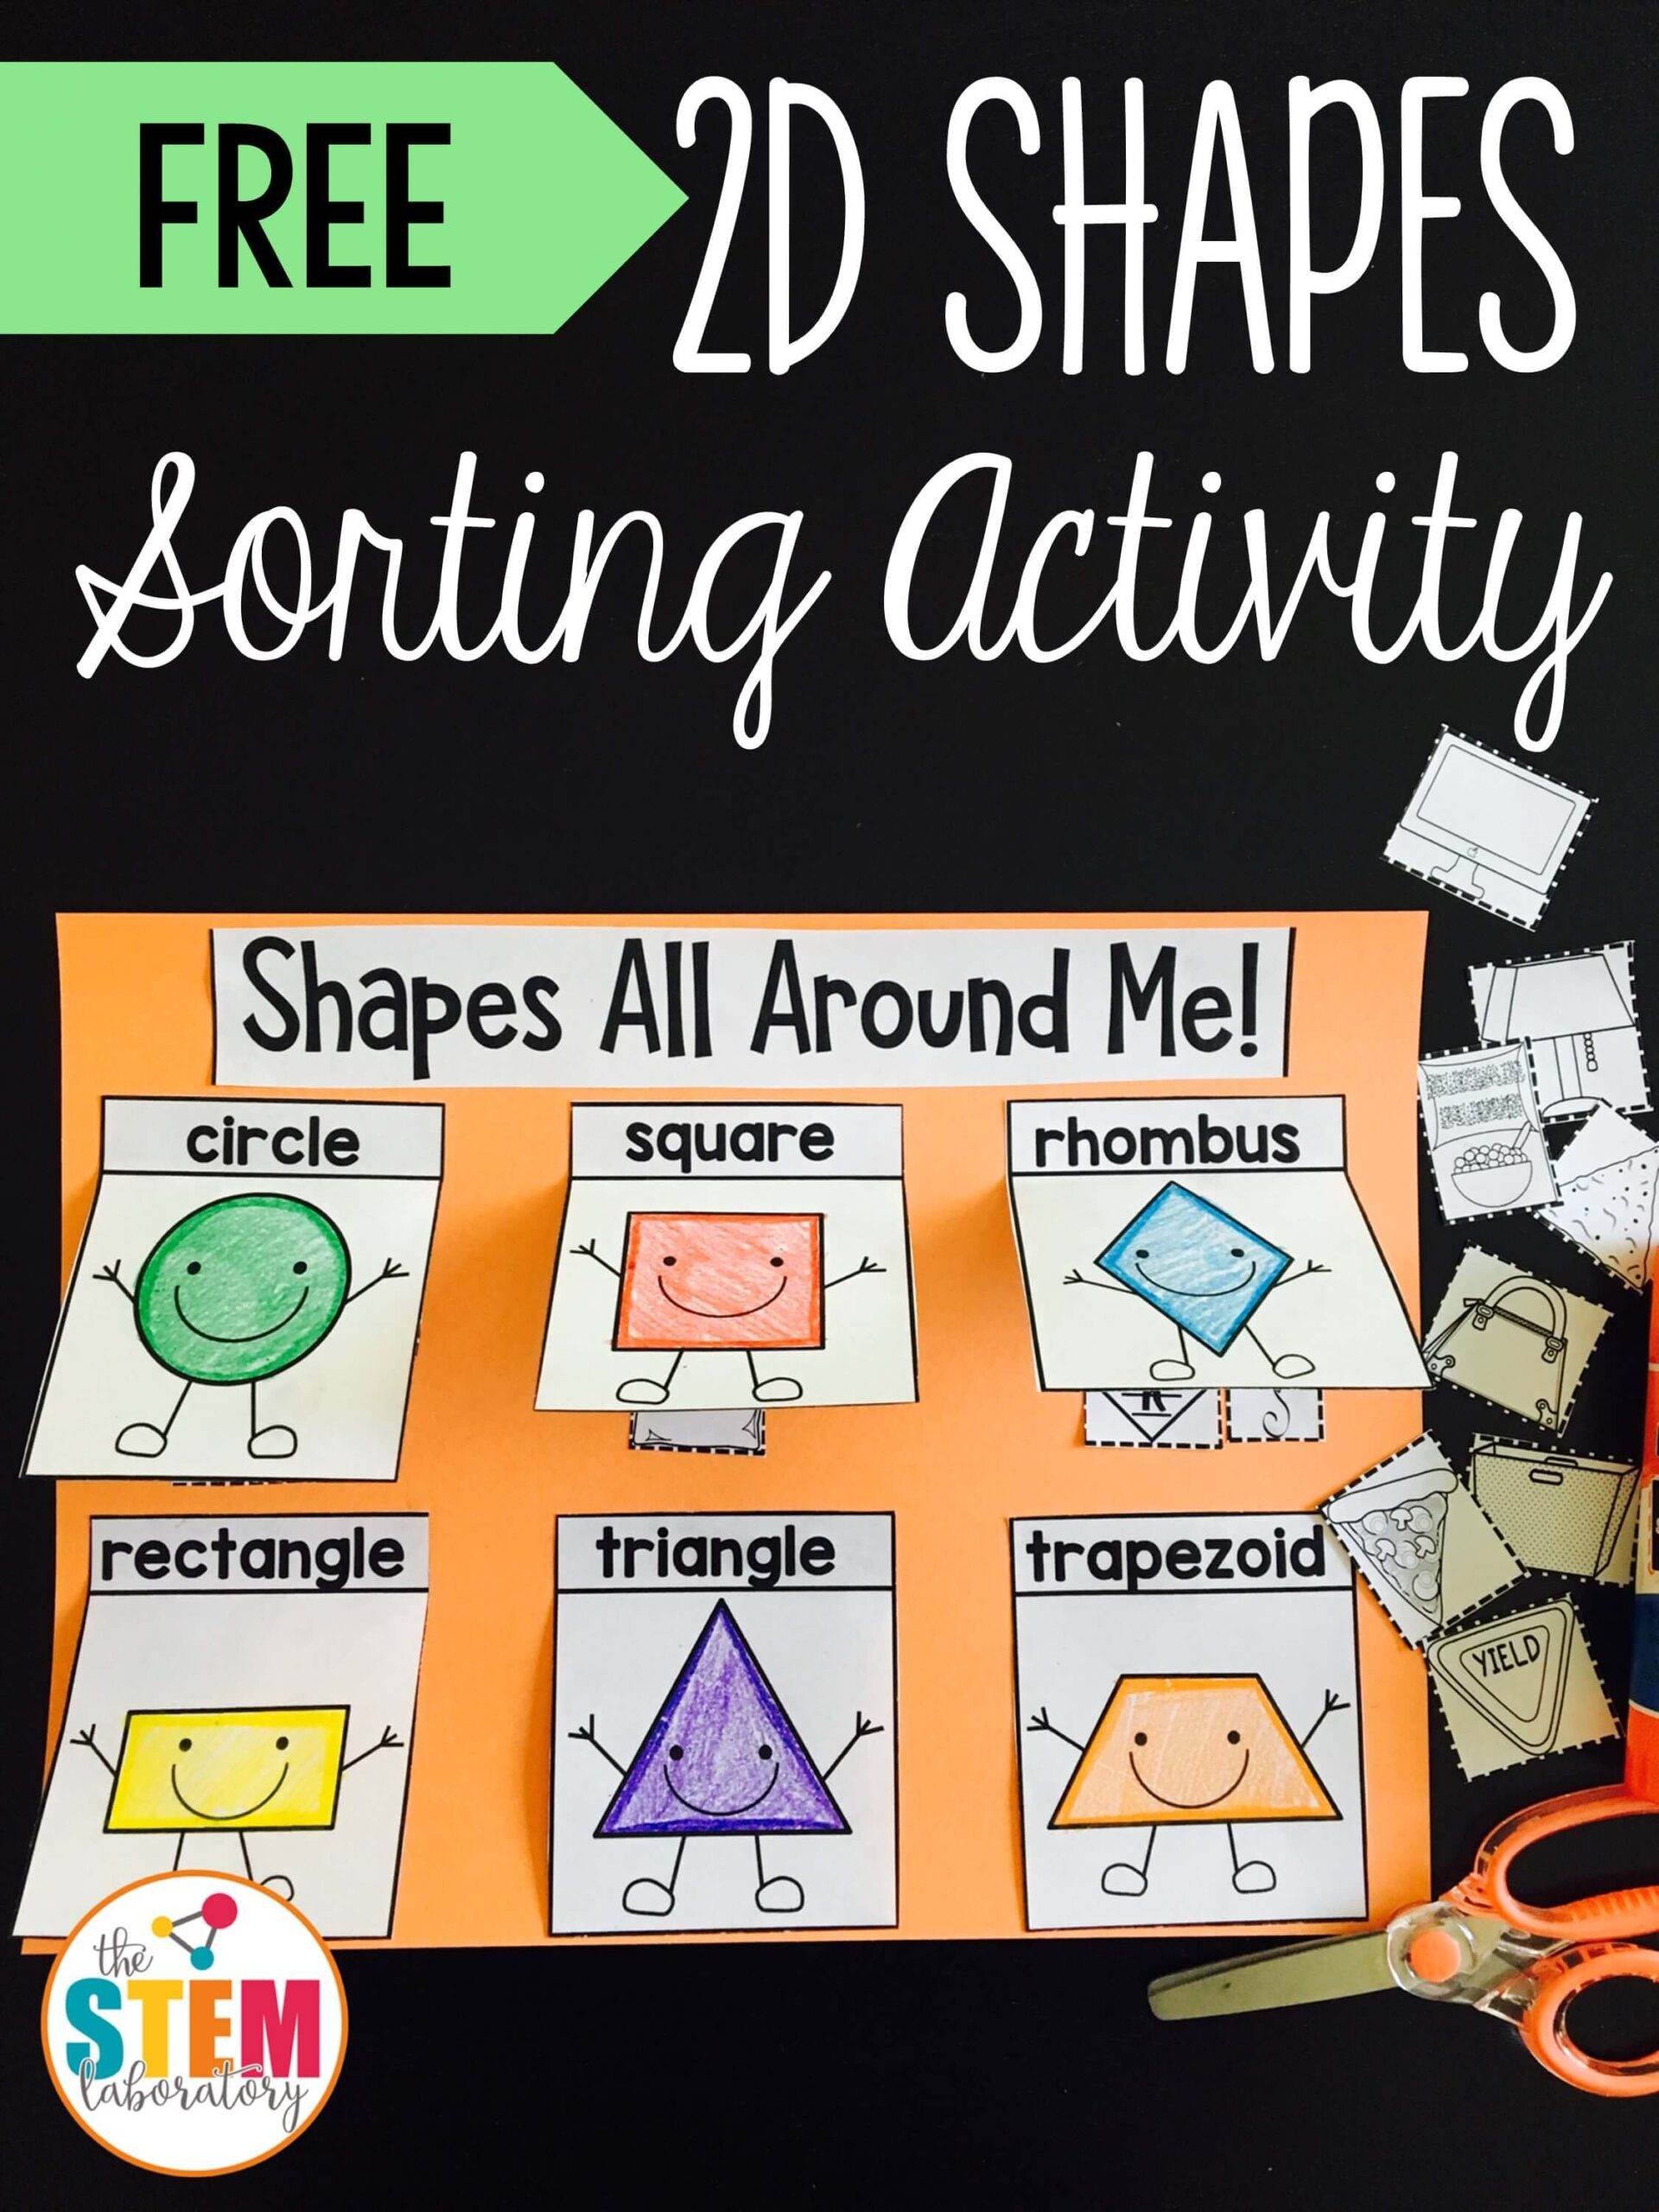 hight resolution of 2D Shapes Sorting Activity - The Stem Laboratory